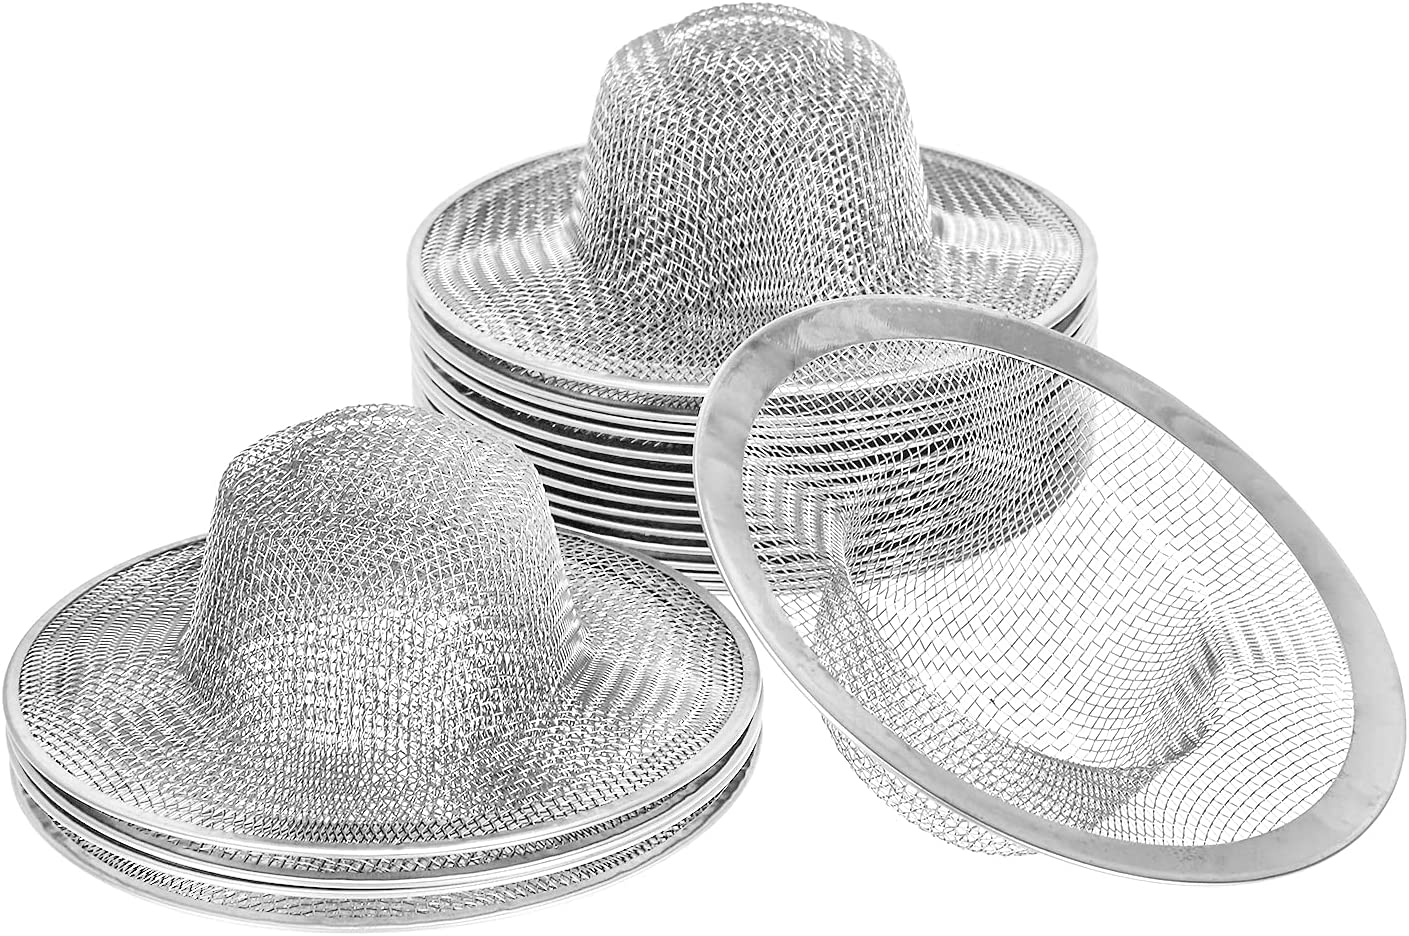 Kingrol 20 Pack 4-1 2 Inch Stainless Slop Save money Sink Strainers Steel Free shipping